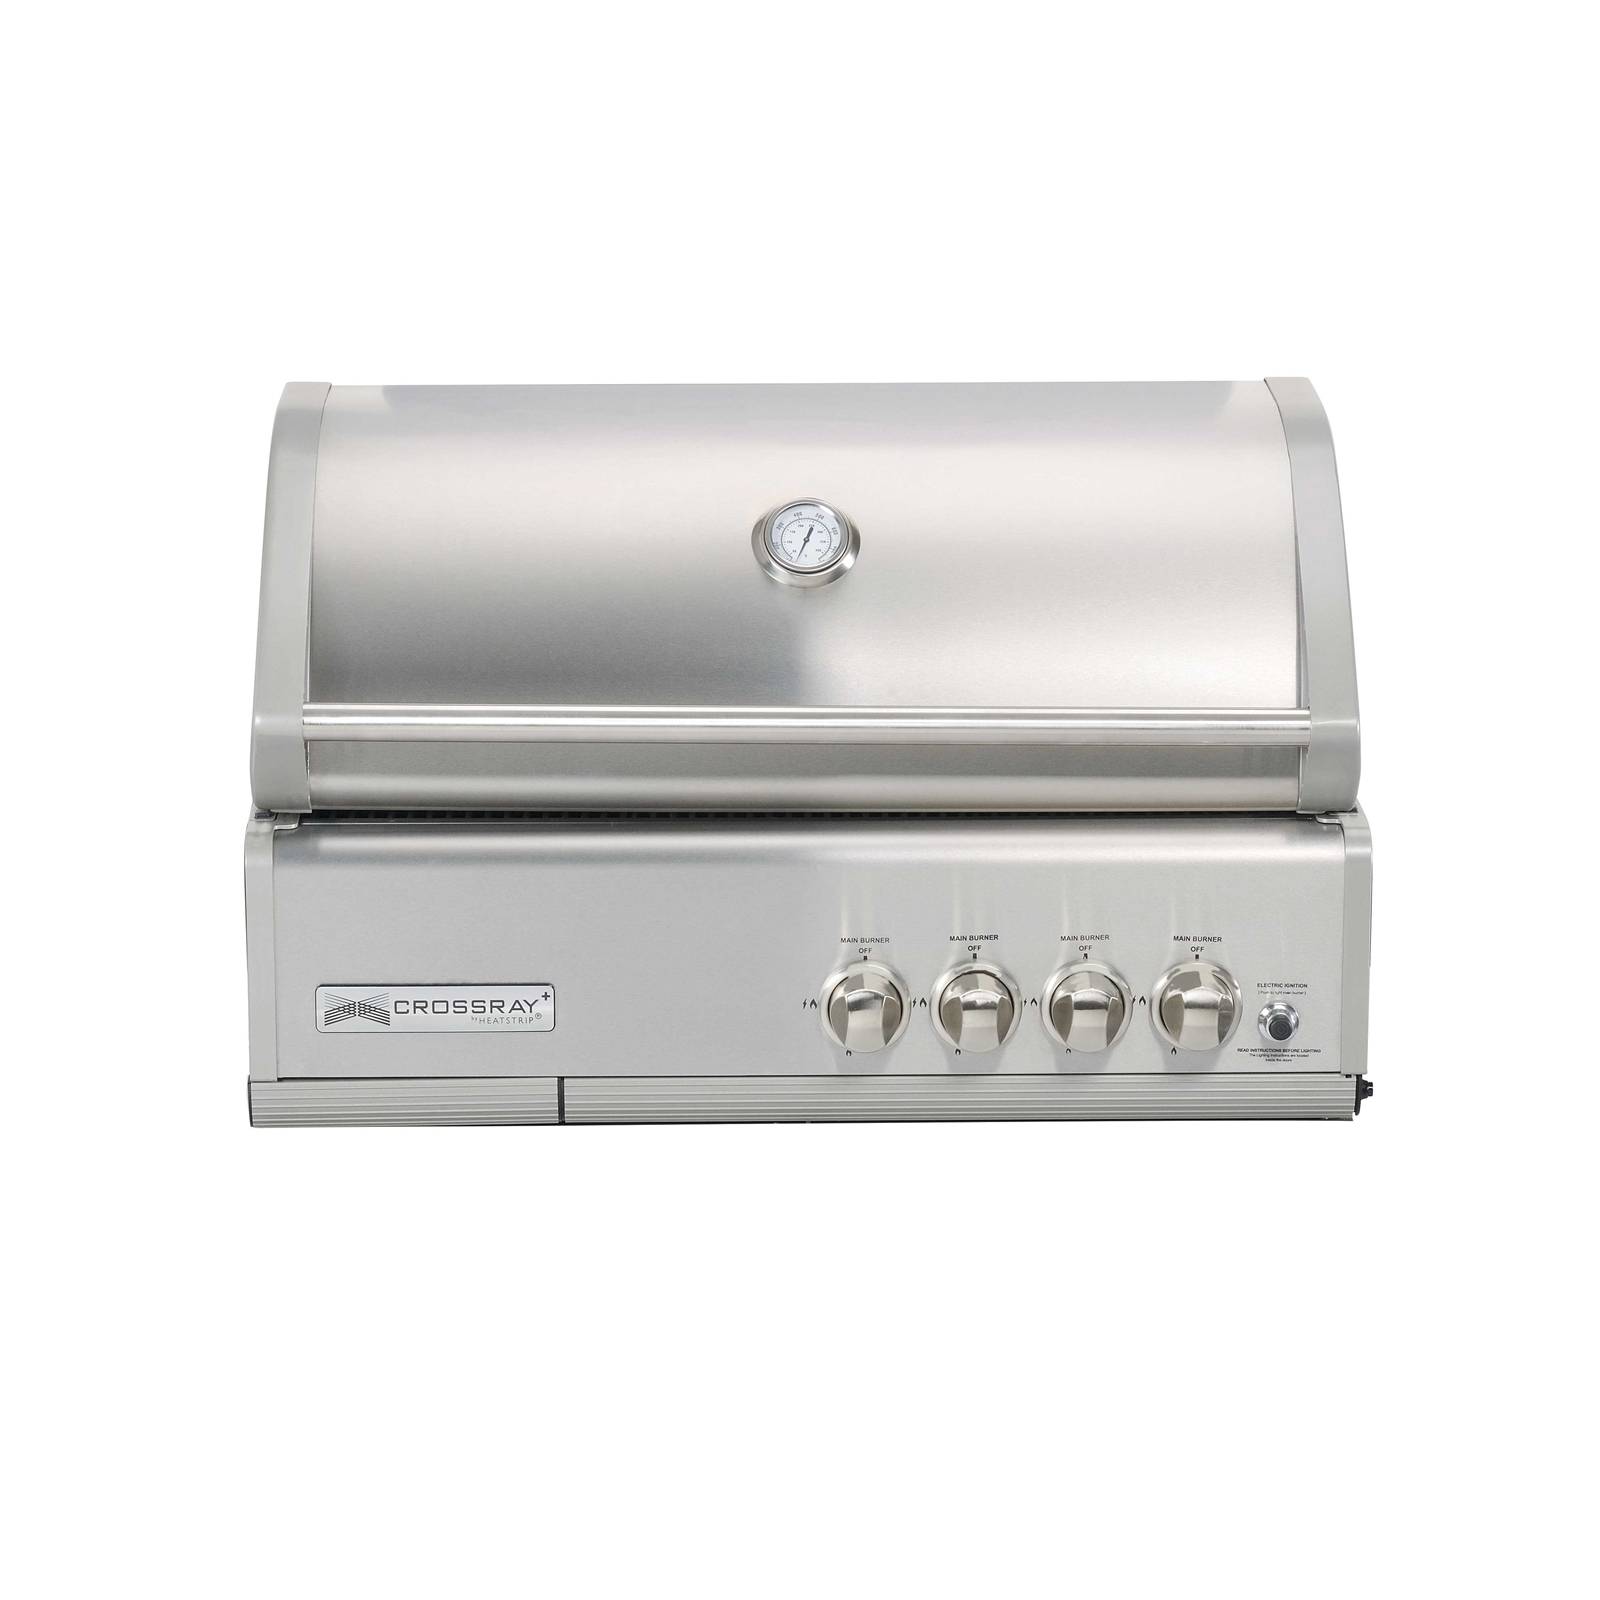 Crossray Stainless Steel 4 Burner In Built Infrared BBQ